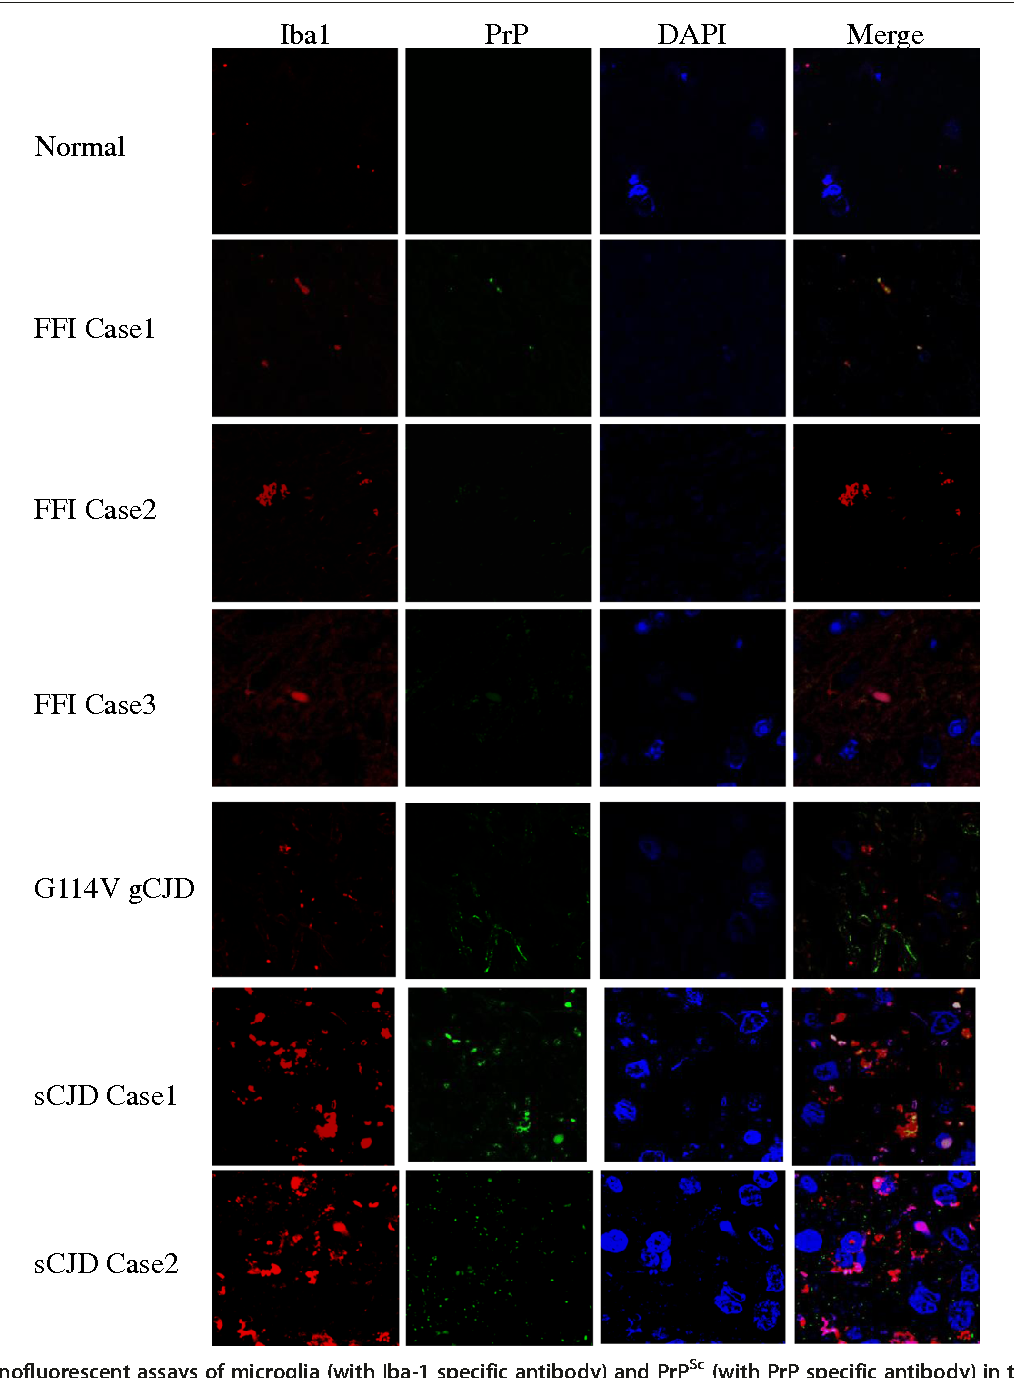 Figure 4 Immunofluorescent assays of microglia (with Iba-1 specific antibody) and PrPSc (with PrP specific antibody) in the temporal lobes of different human prion diseases. The images of PrPSc (green), Iba-1 (red), DAPI (blue) and merge are monitored under a confocal microscopy and indicated above. Various prion diseases and normal control are indicated on the left.